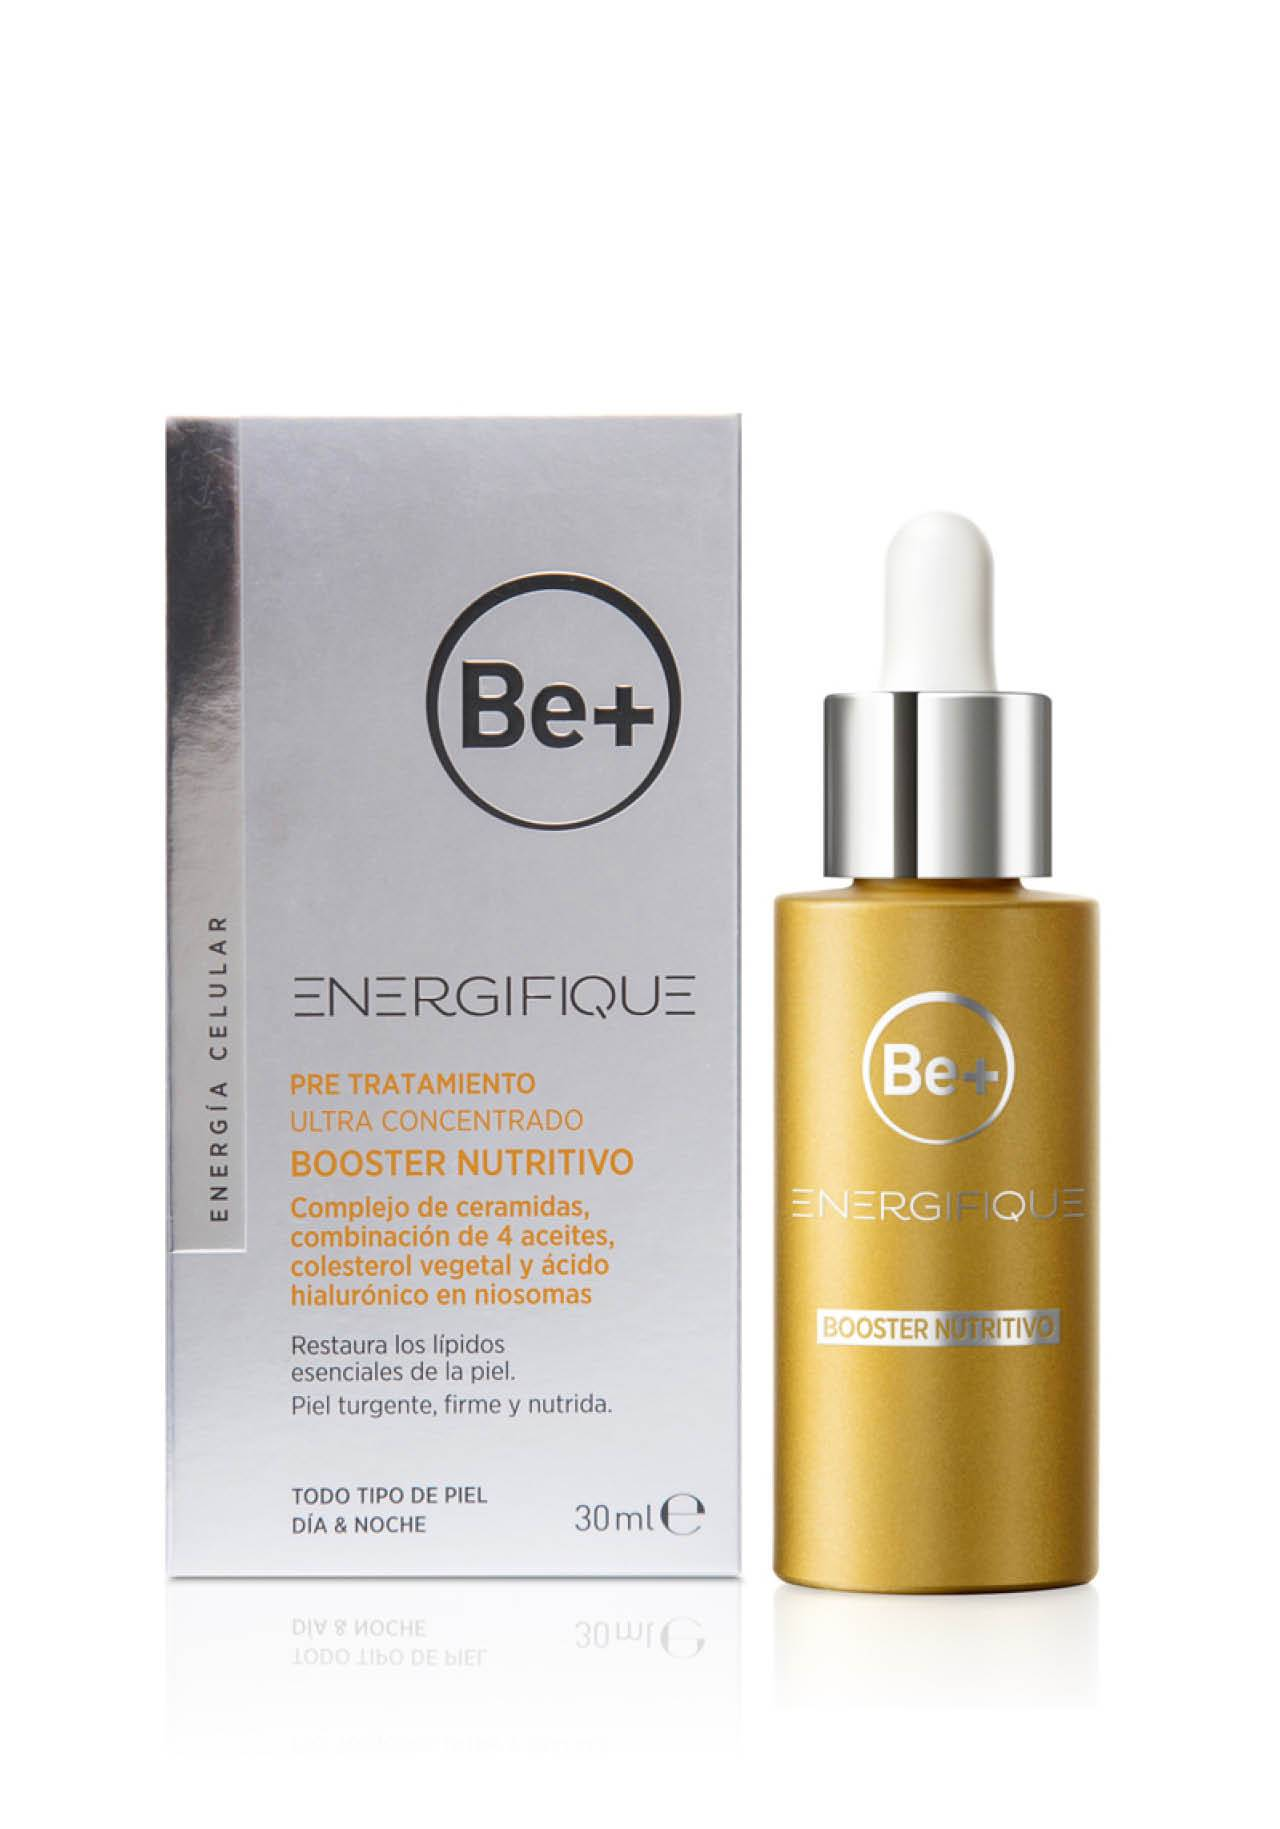 Cosmética booster Ultraconcentrado Boooster Nutritivo Energifique de Be+.